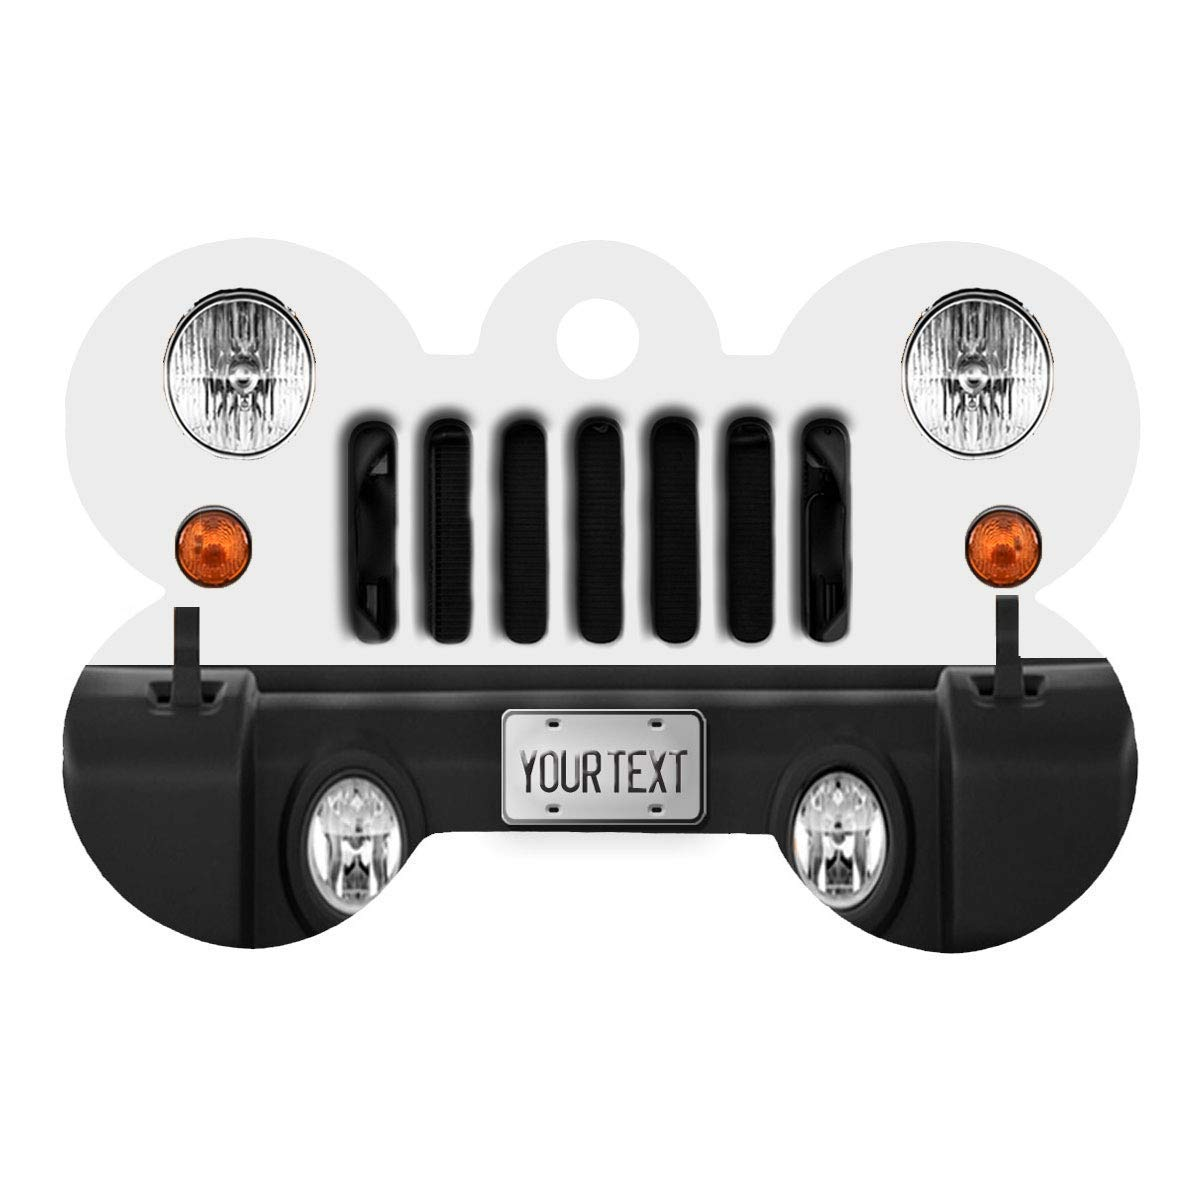 BRGiftShop Personalize Your Own SUV Bumper Car Grill Pink License Plate Bone Shaped Metal Pet ID Tag with Contact Information